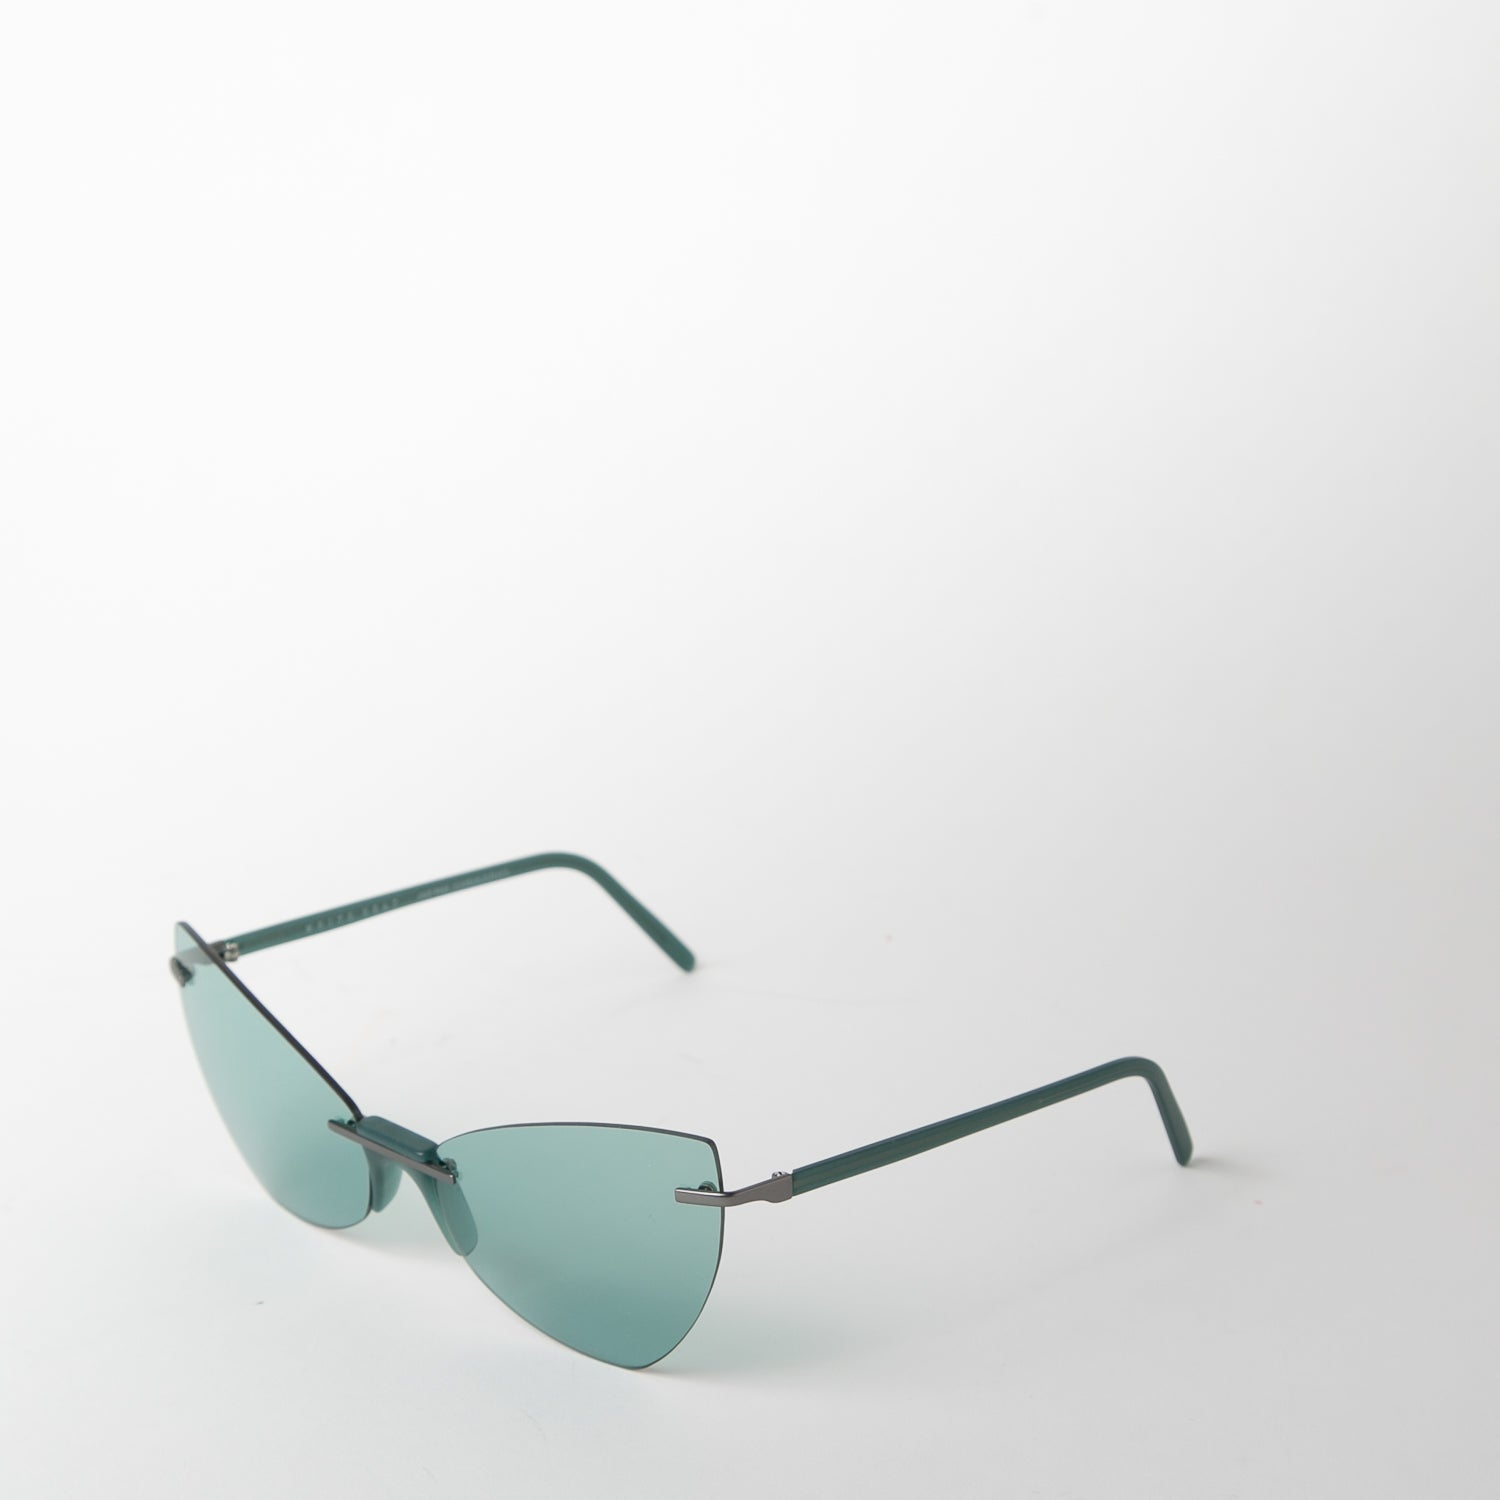 Shapiro Sunglasses, mint